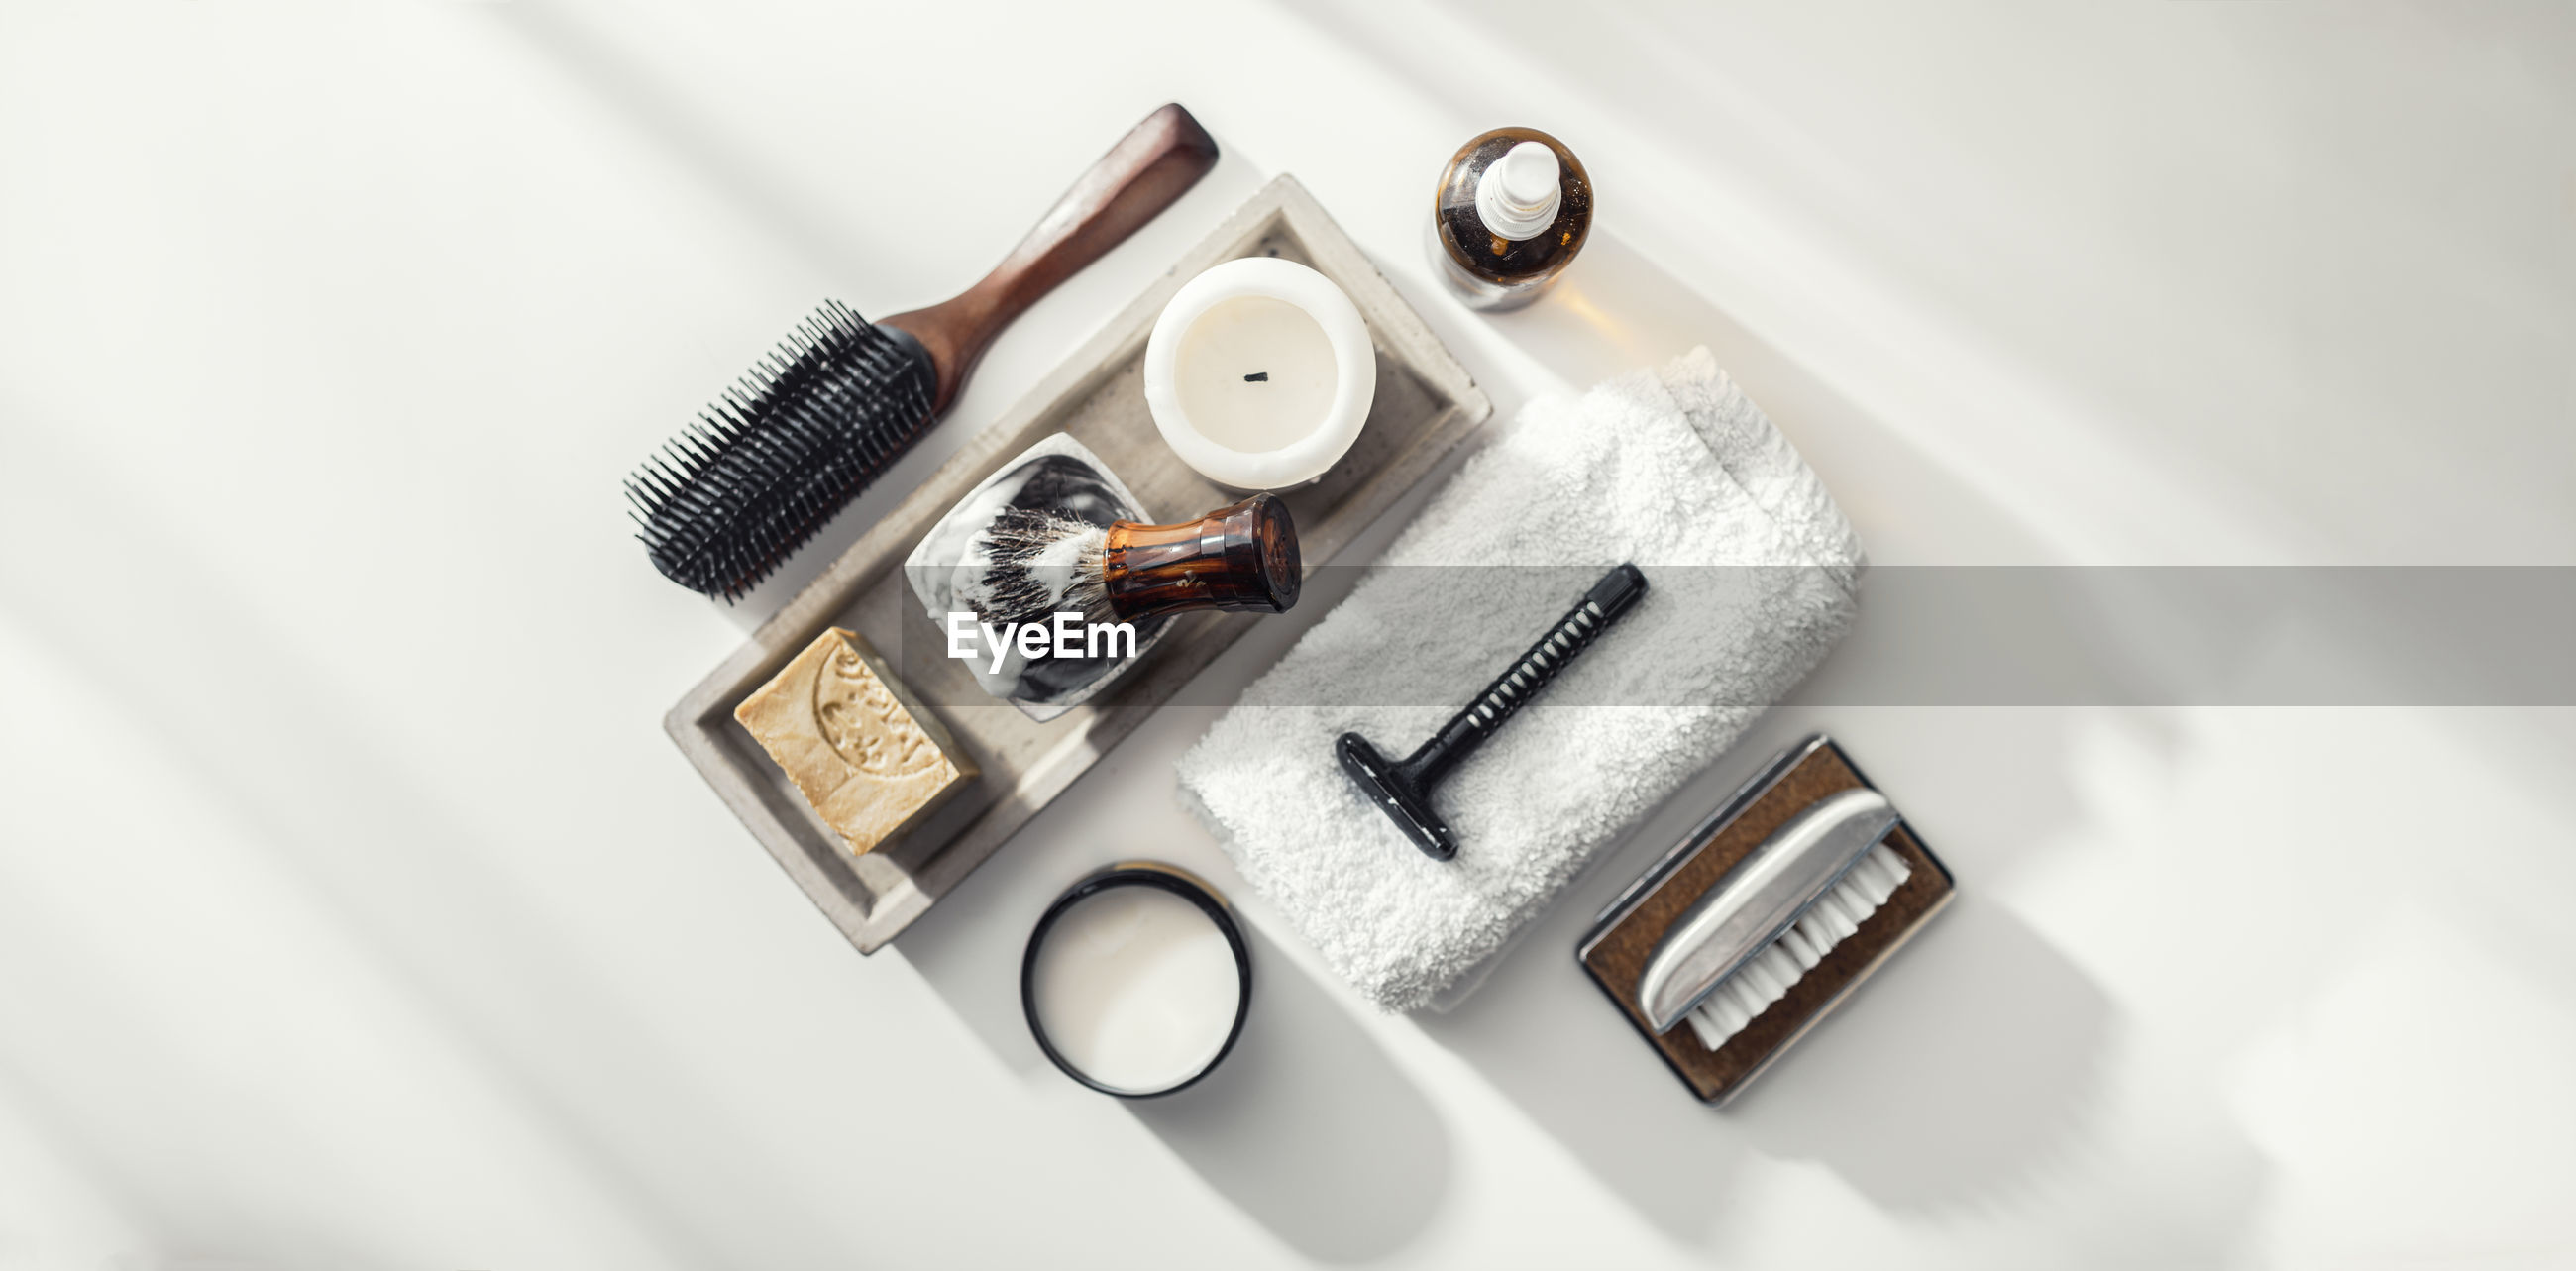 Directly above shot of shaving equipment over white background